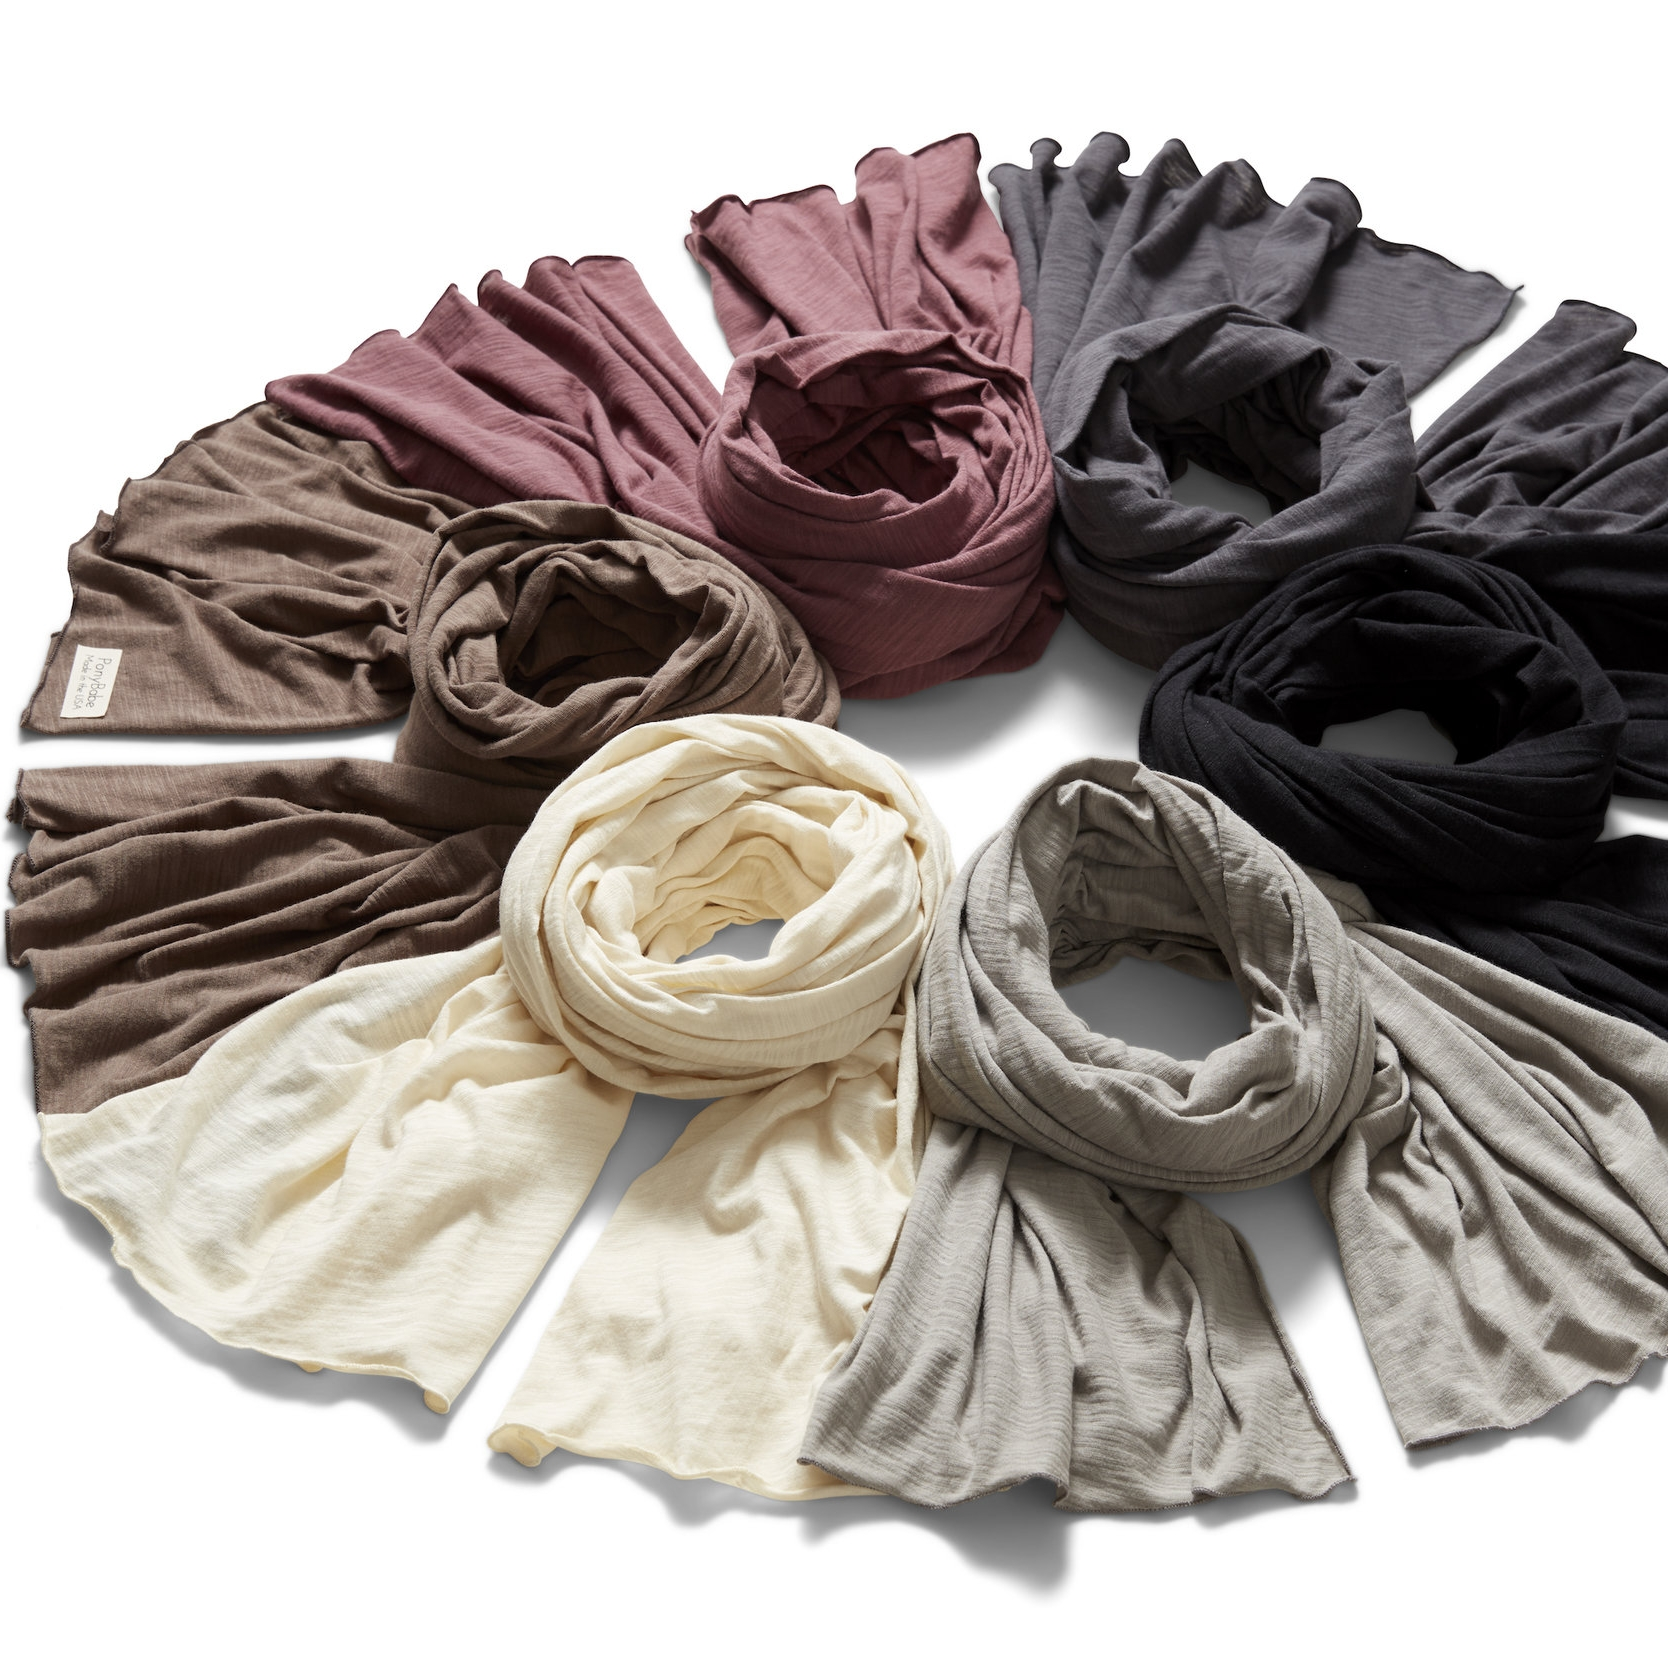 MULTI WRAPS | $69 - These wraps have a stitched edge, and are surprisingly warm considering the lightweight feel. They're the perfect complement to any wardrobe and can be worn as a shawl, a scarf, a nursing cover, a head wrap... the possibilities are endless! Purchase them individually, or as a discounted set.